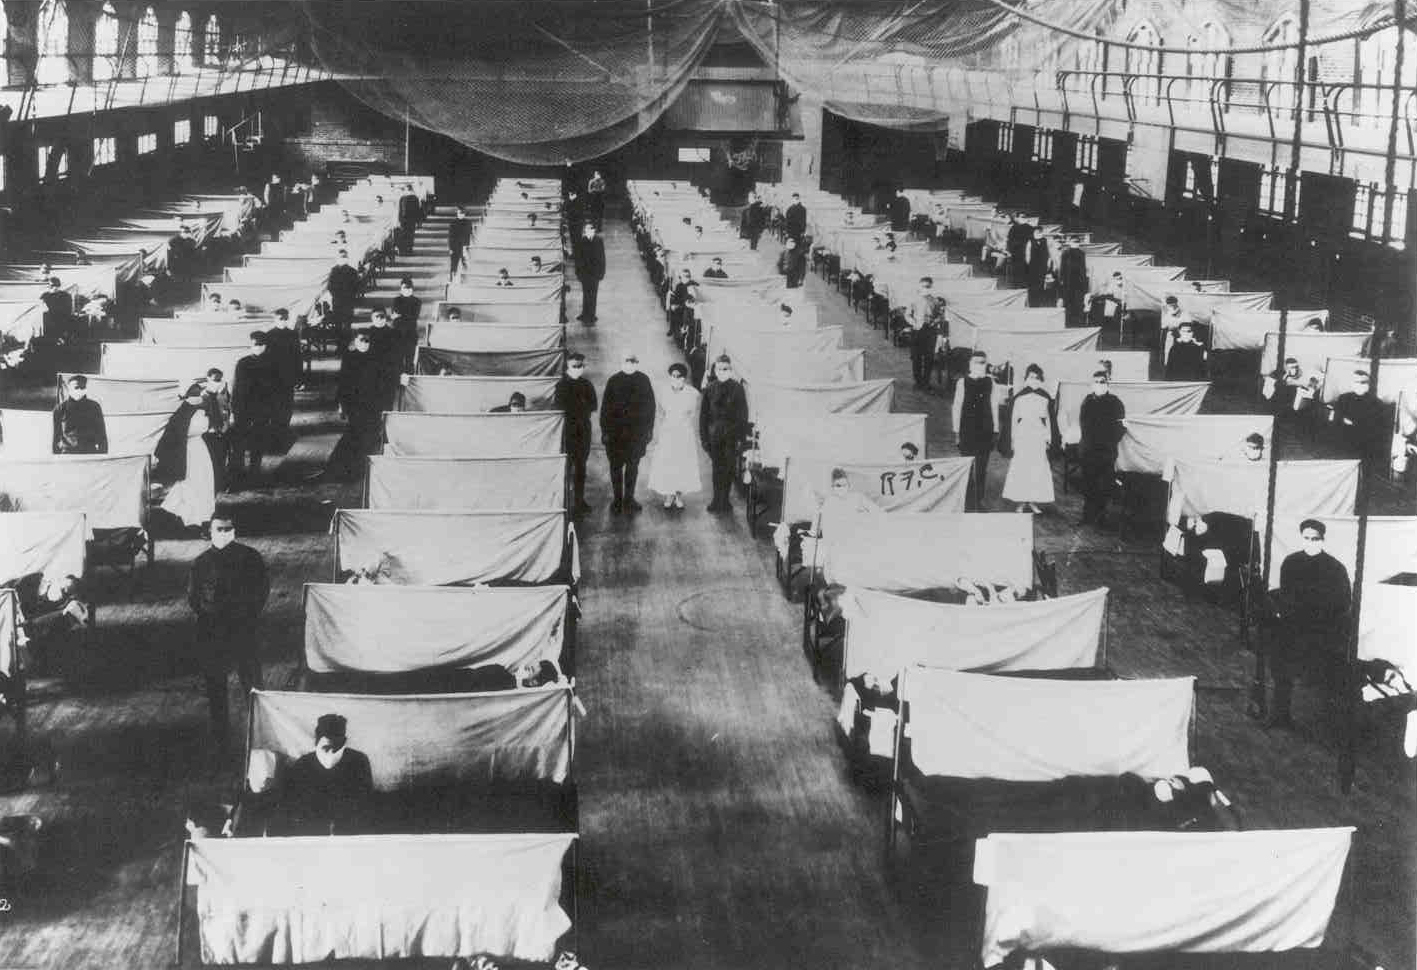 New Look at 1918/1919 El Niño Suggests Link to Flu Pandemic | El ...